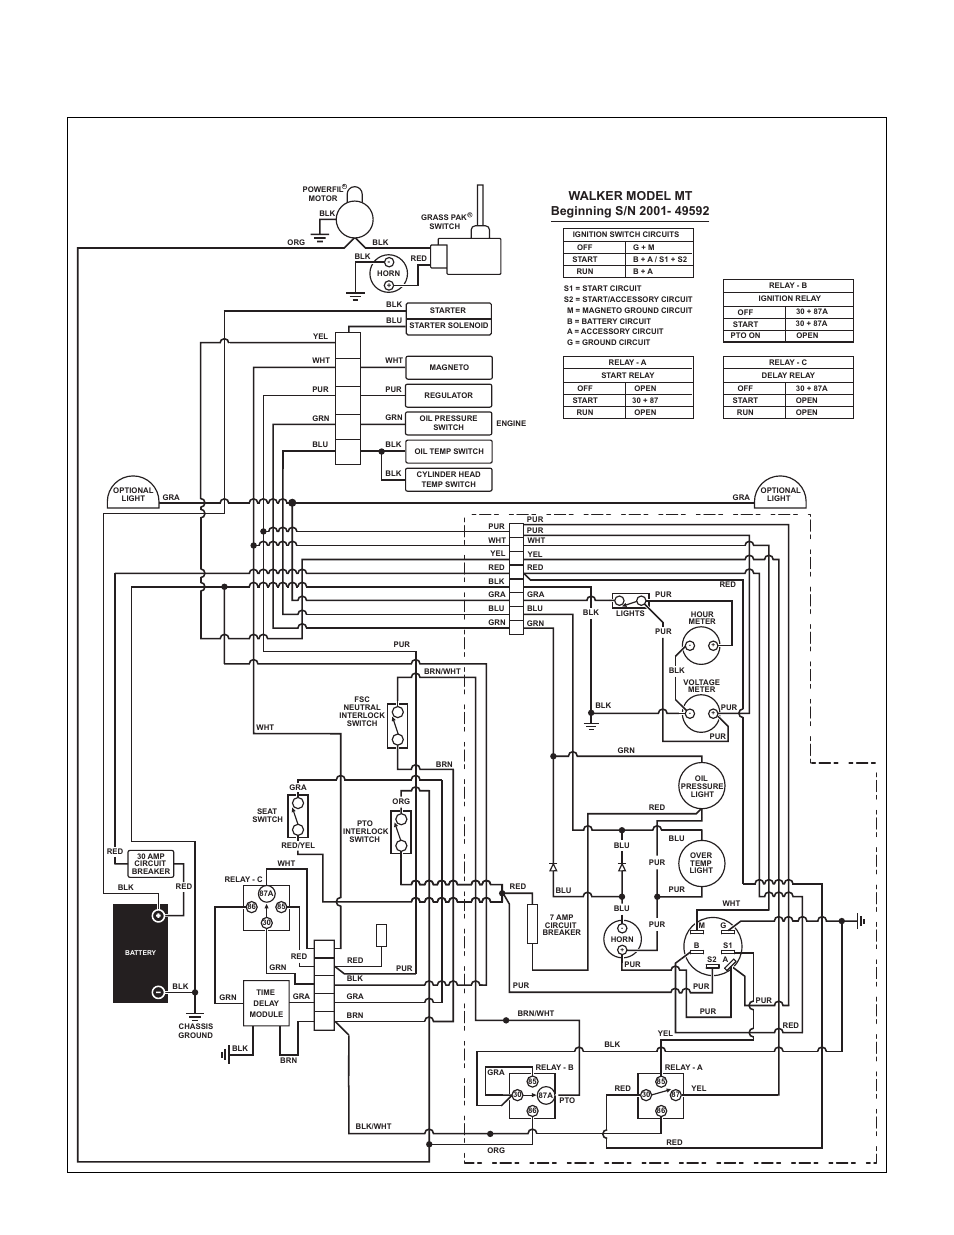 User's manual of Electric Fan Wiring Electrical And